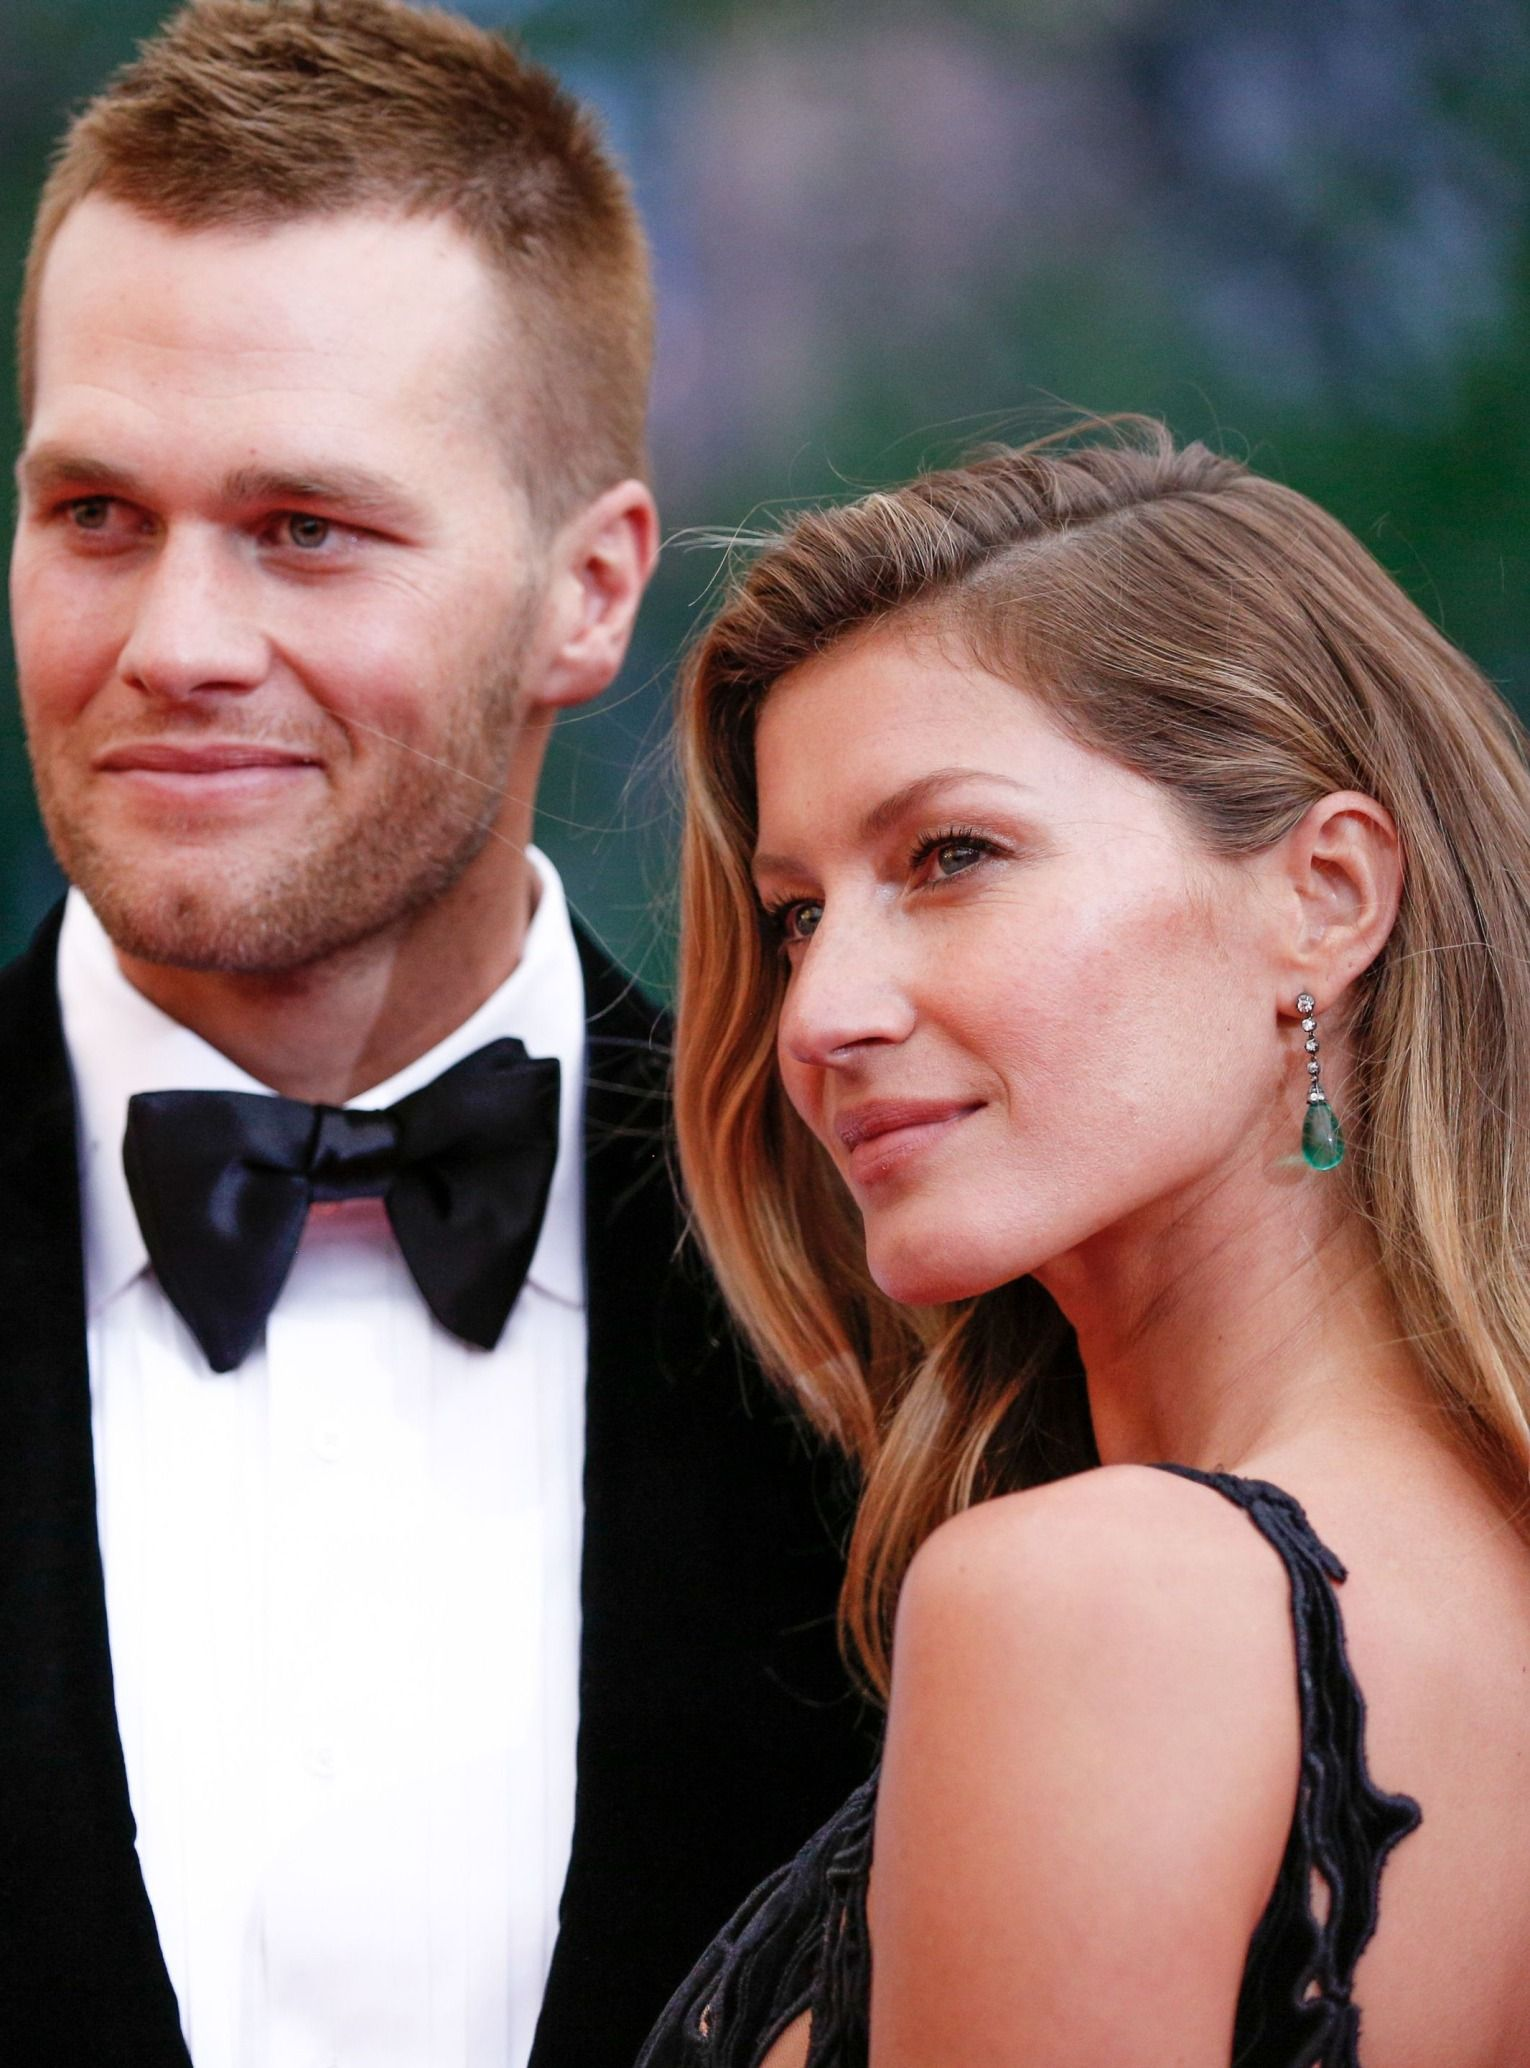 Tom Brady wishes Gisele a happy birthday, reminds us that their love is true and adorable